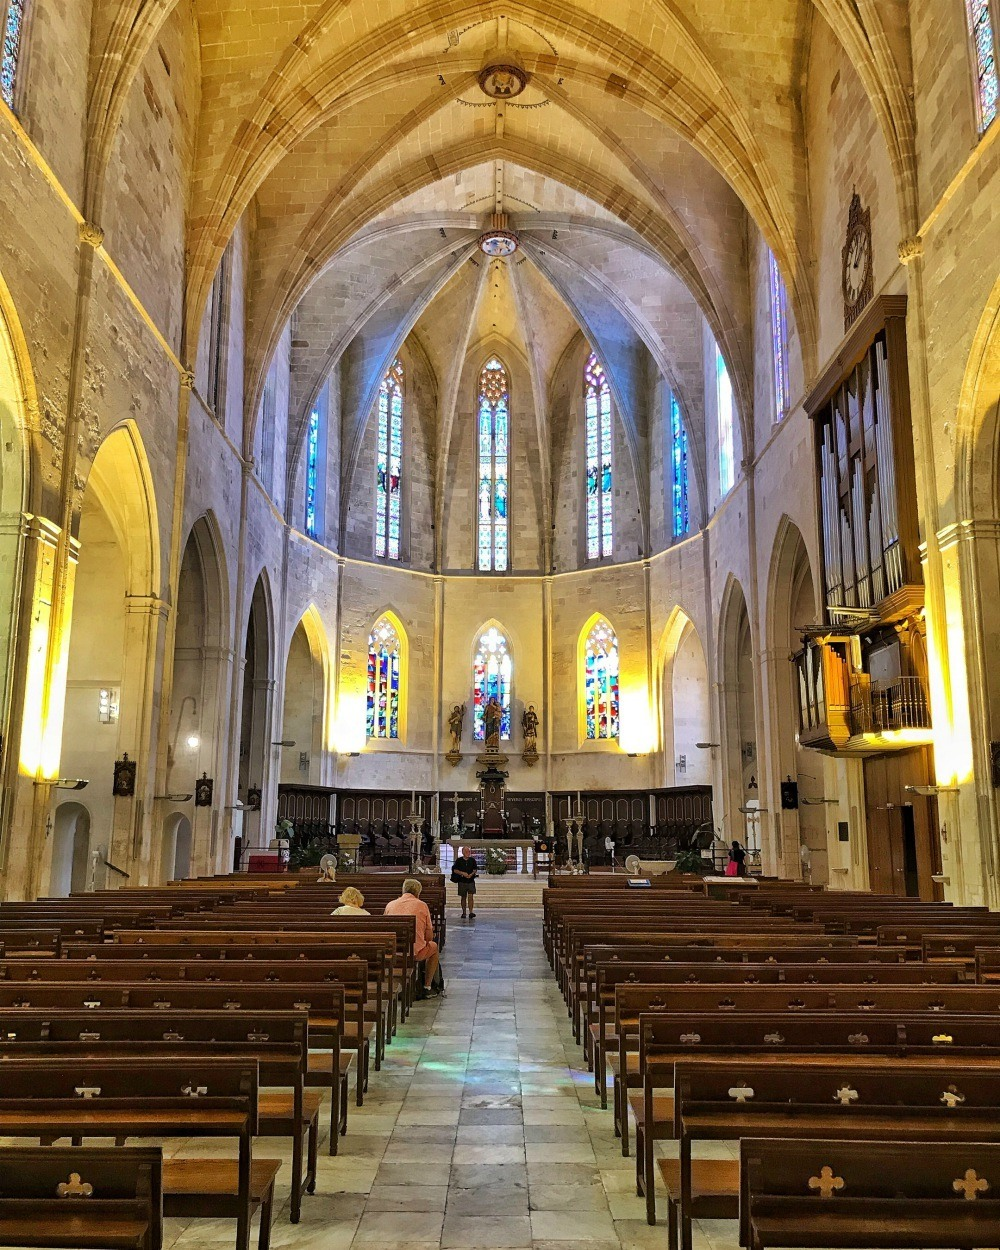 Cathedral interior in Ciutadella Menorca Spain Photo Heatheronhertravels.com